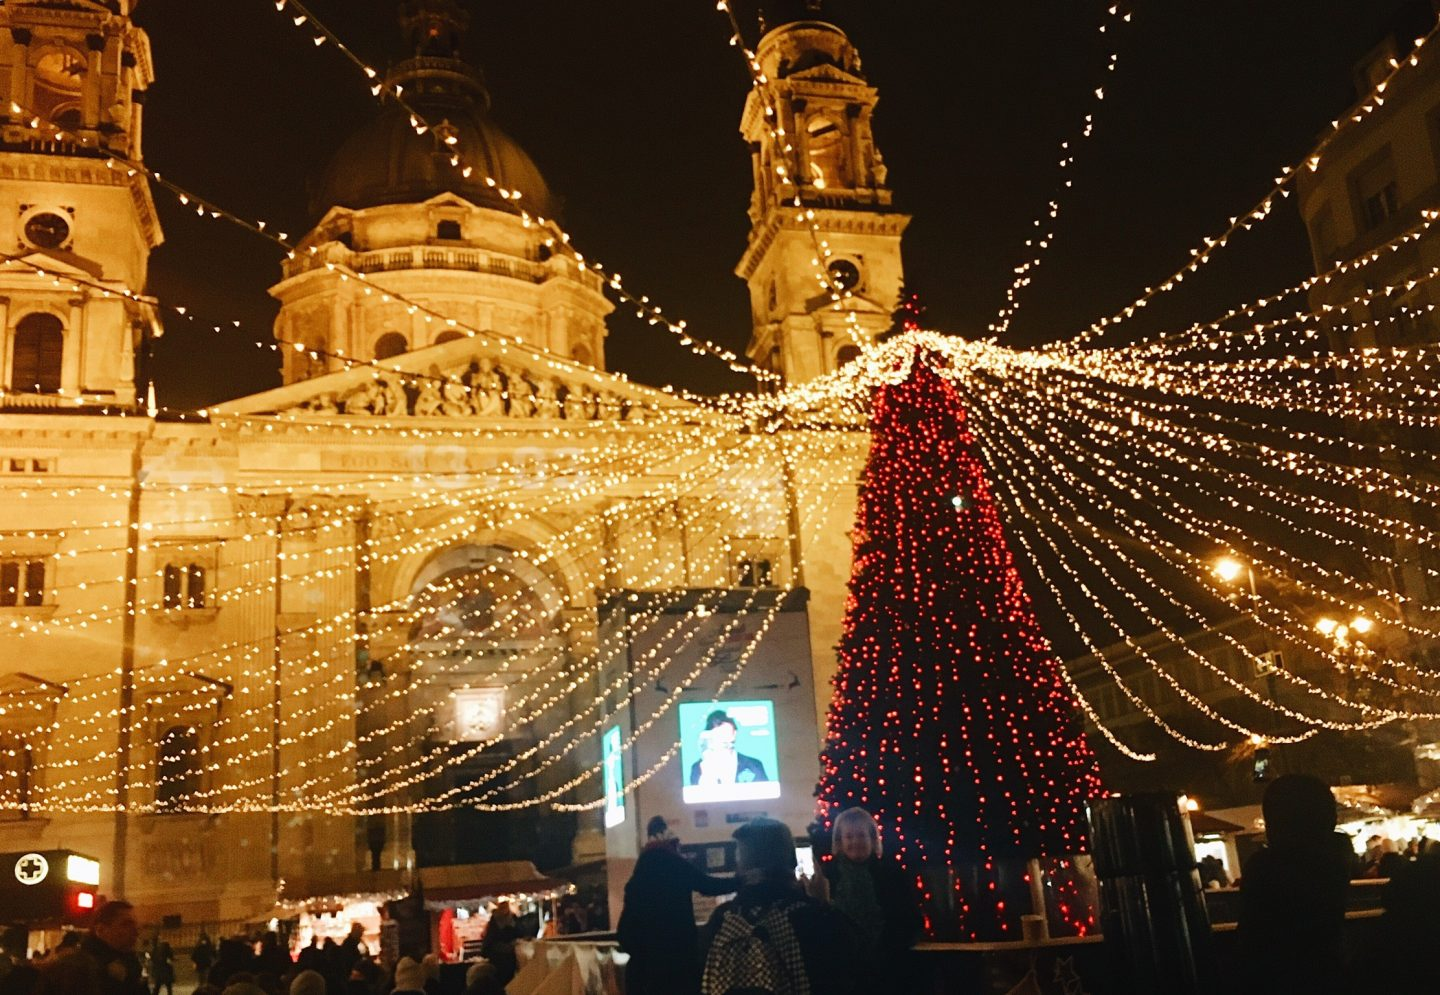 St. Stephen's Basilica all decorated for Christmas in Budapest, Hungary!